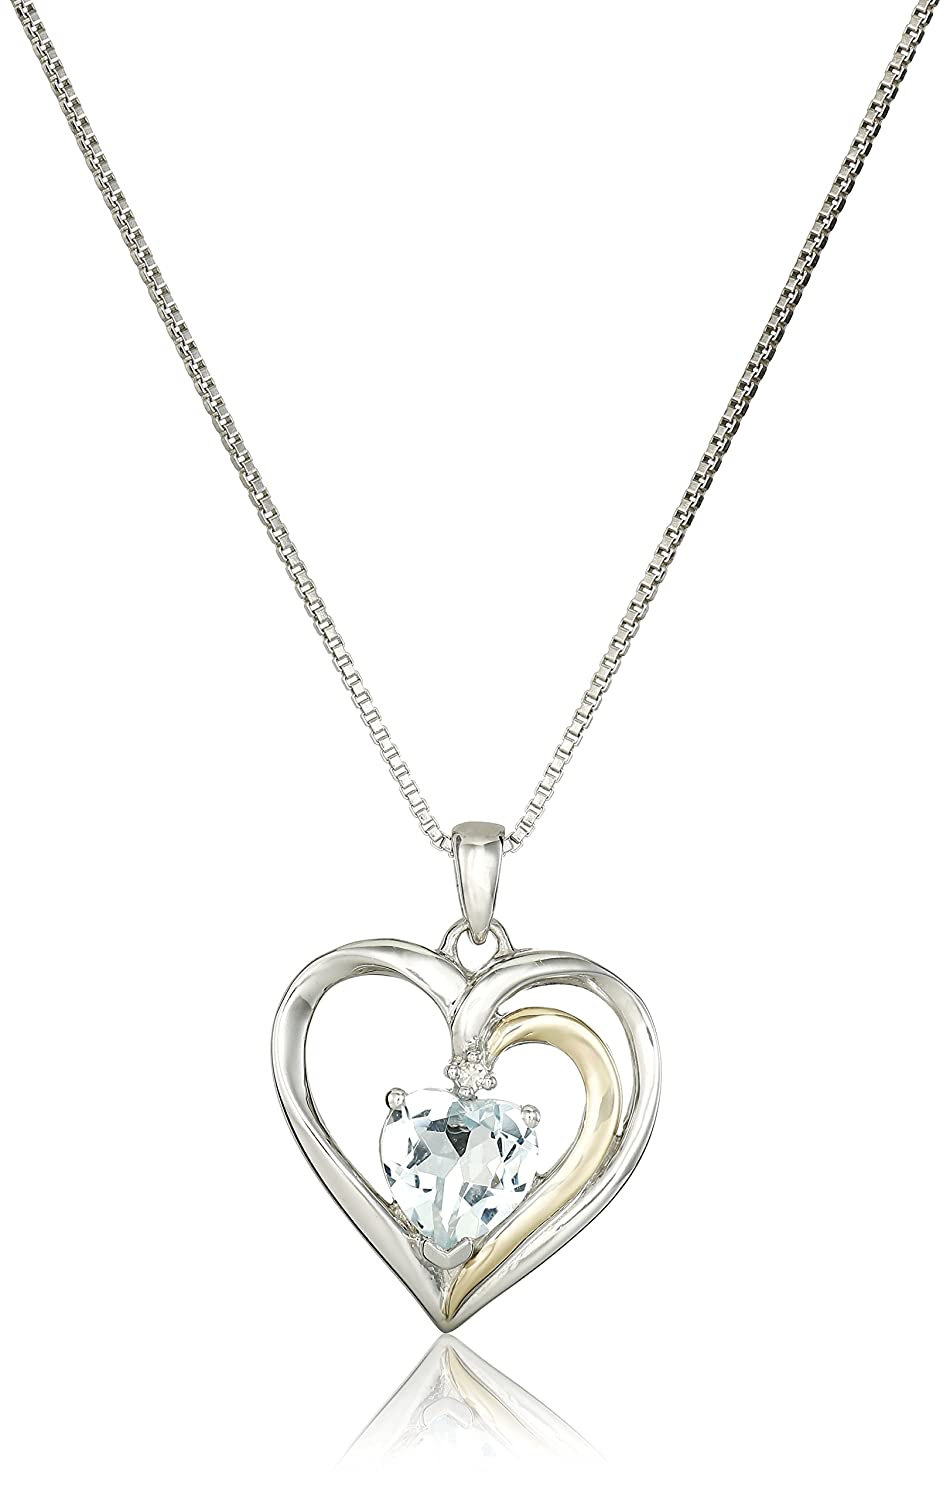 Amazon sterling silver and 14k yellow gold gold aquamarine and amazon sterling silver and 14k yellow gold gold aquamarine and diamond heart pendant necklace 007 cttw i j color i2 i3 clarity 18 jewelry aloadofball Gallery